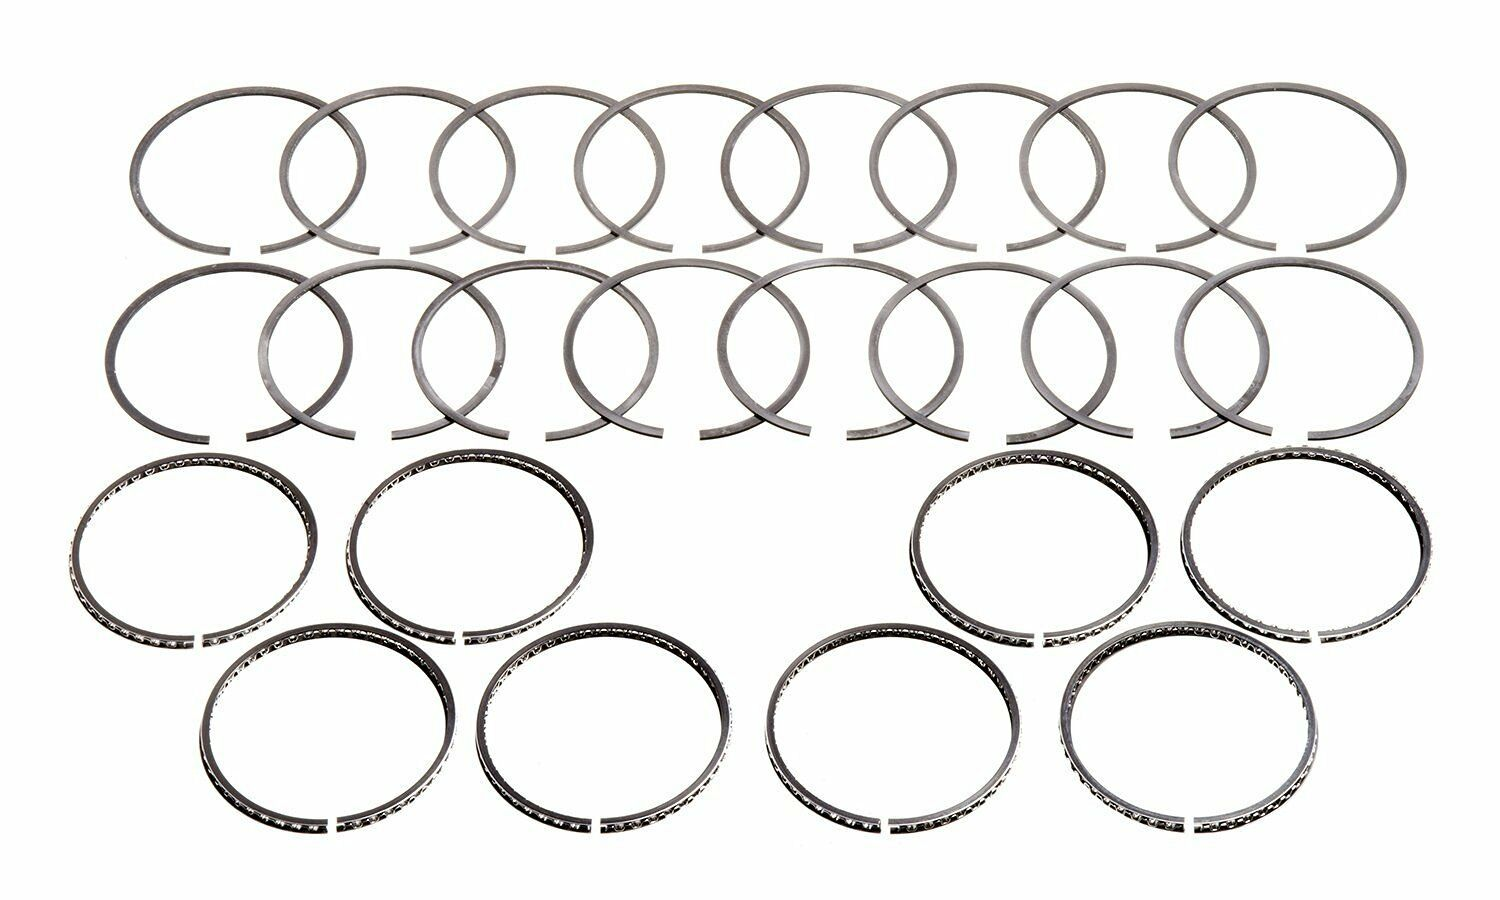 2M139030 CHROME MOLY RINGS 4.030 BORE SBC 350 383 FORD